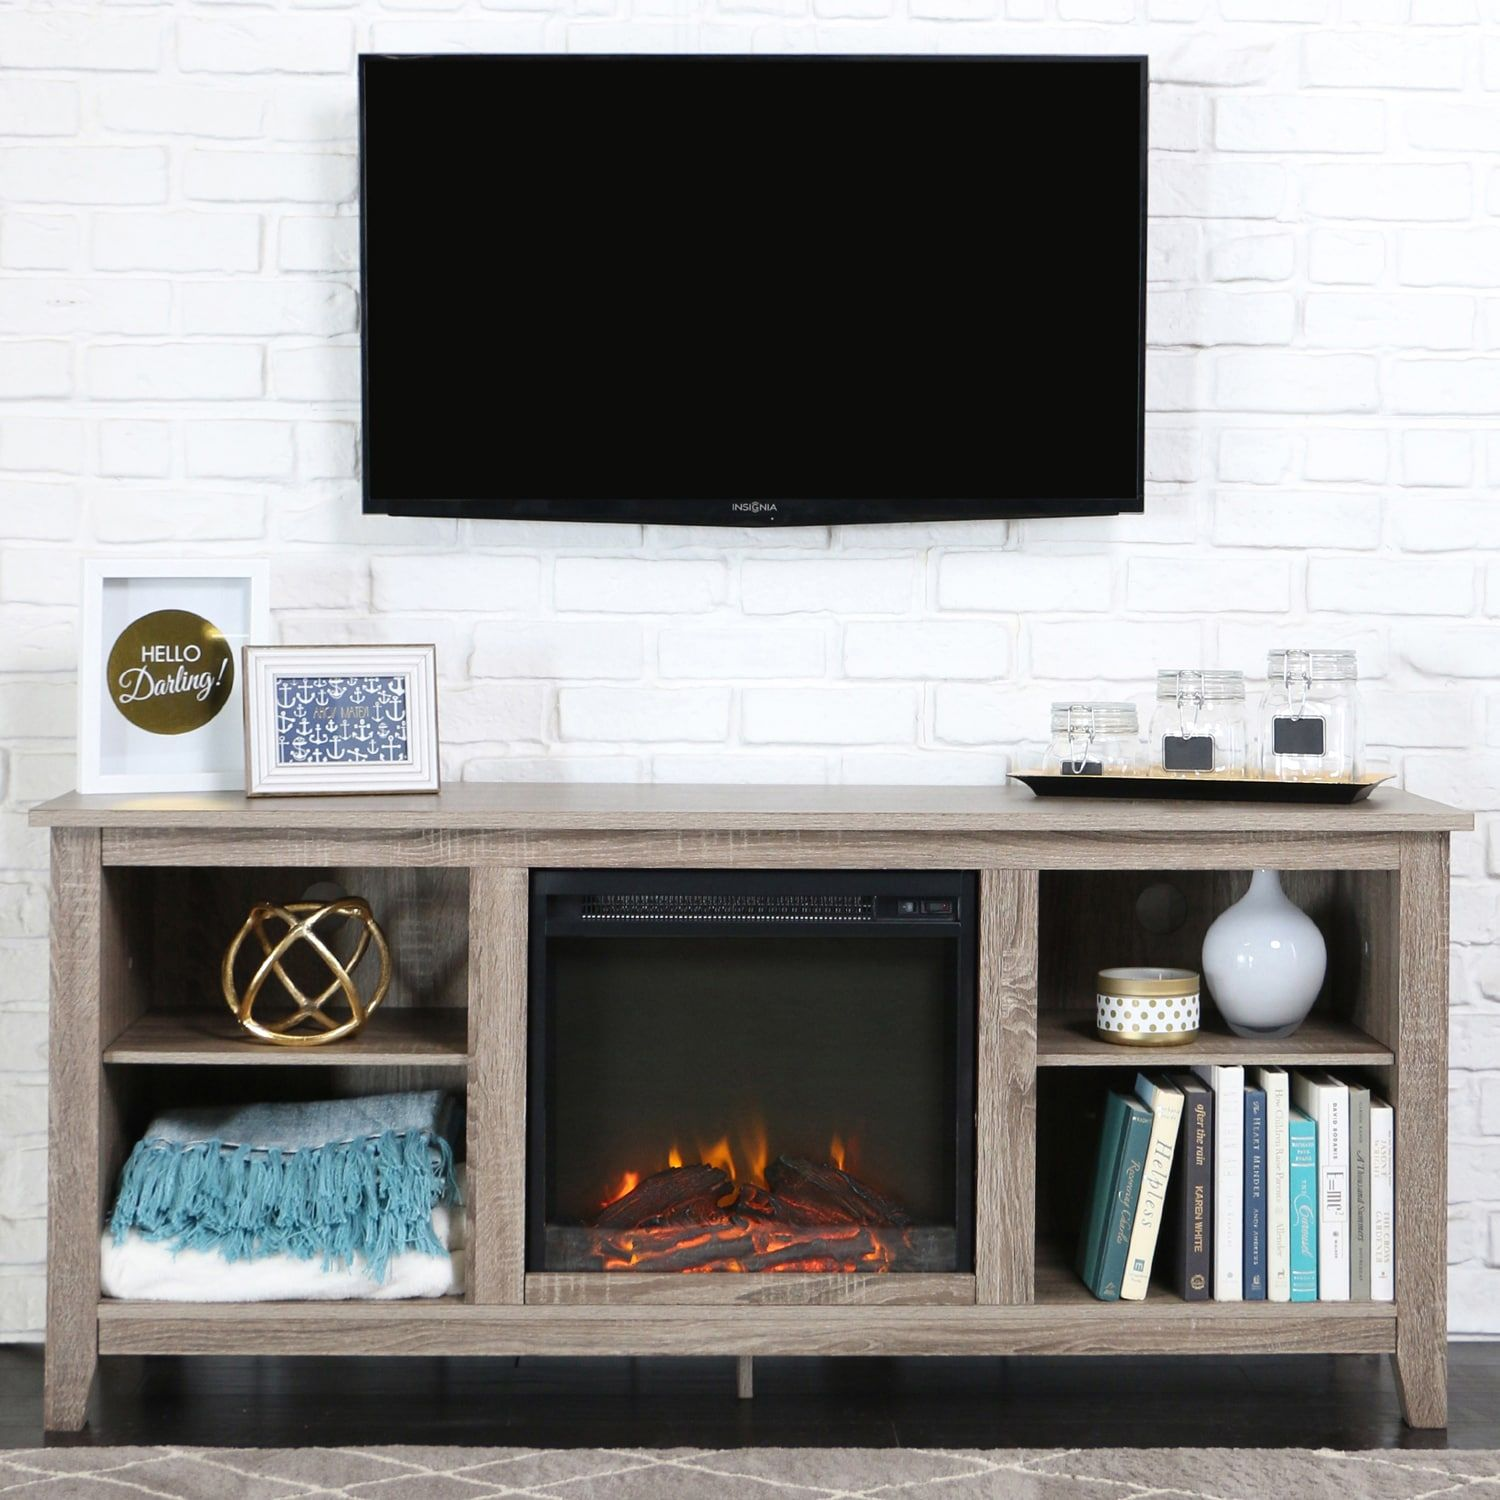 58 Driftwood Tv Stand With Fireplace Fireplace Tv Stand Tv Stand With Fireplace Insert Electric Fireplace Tv Stand